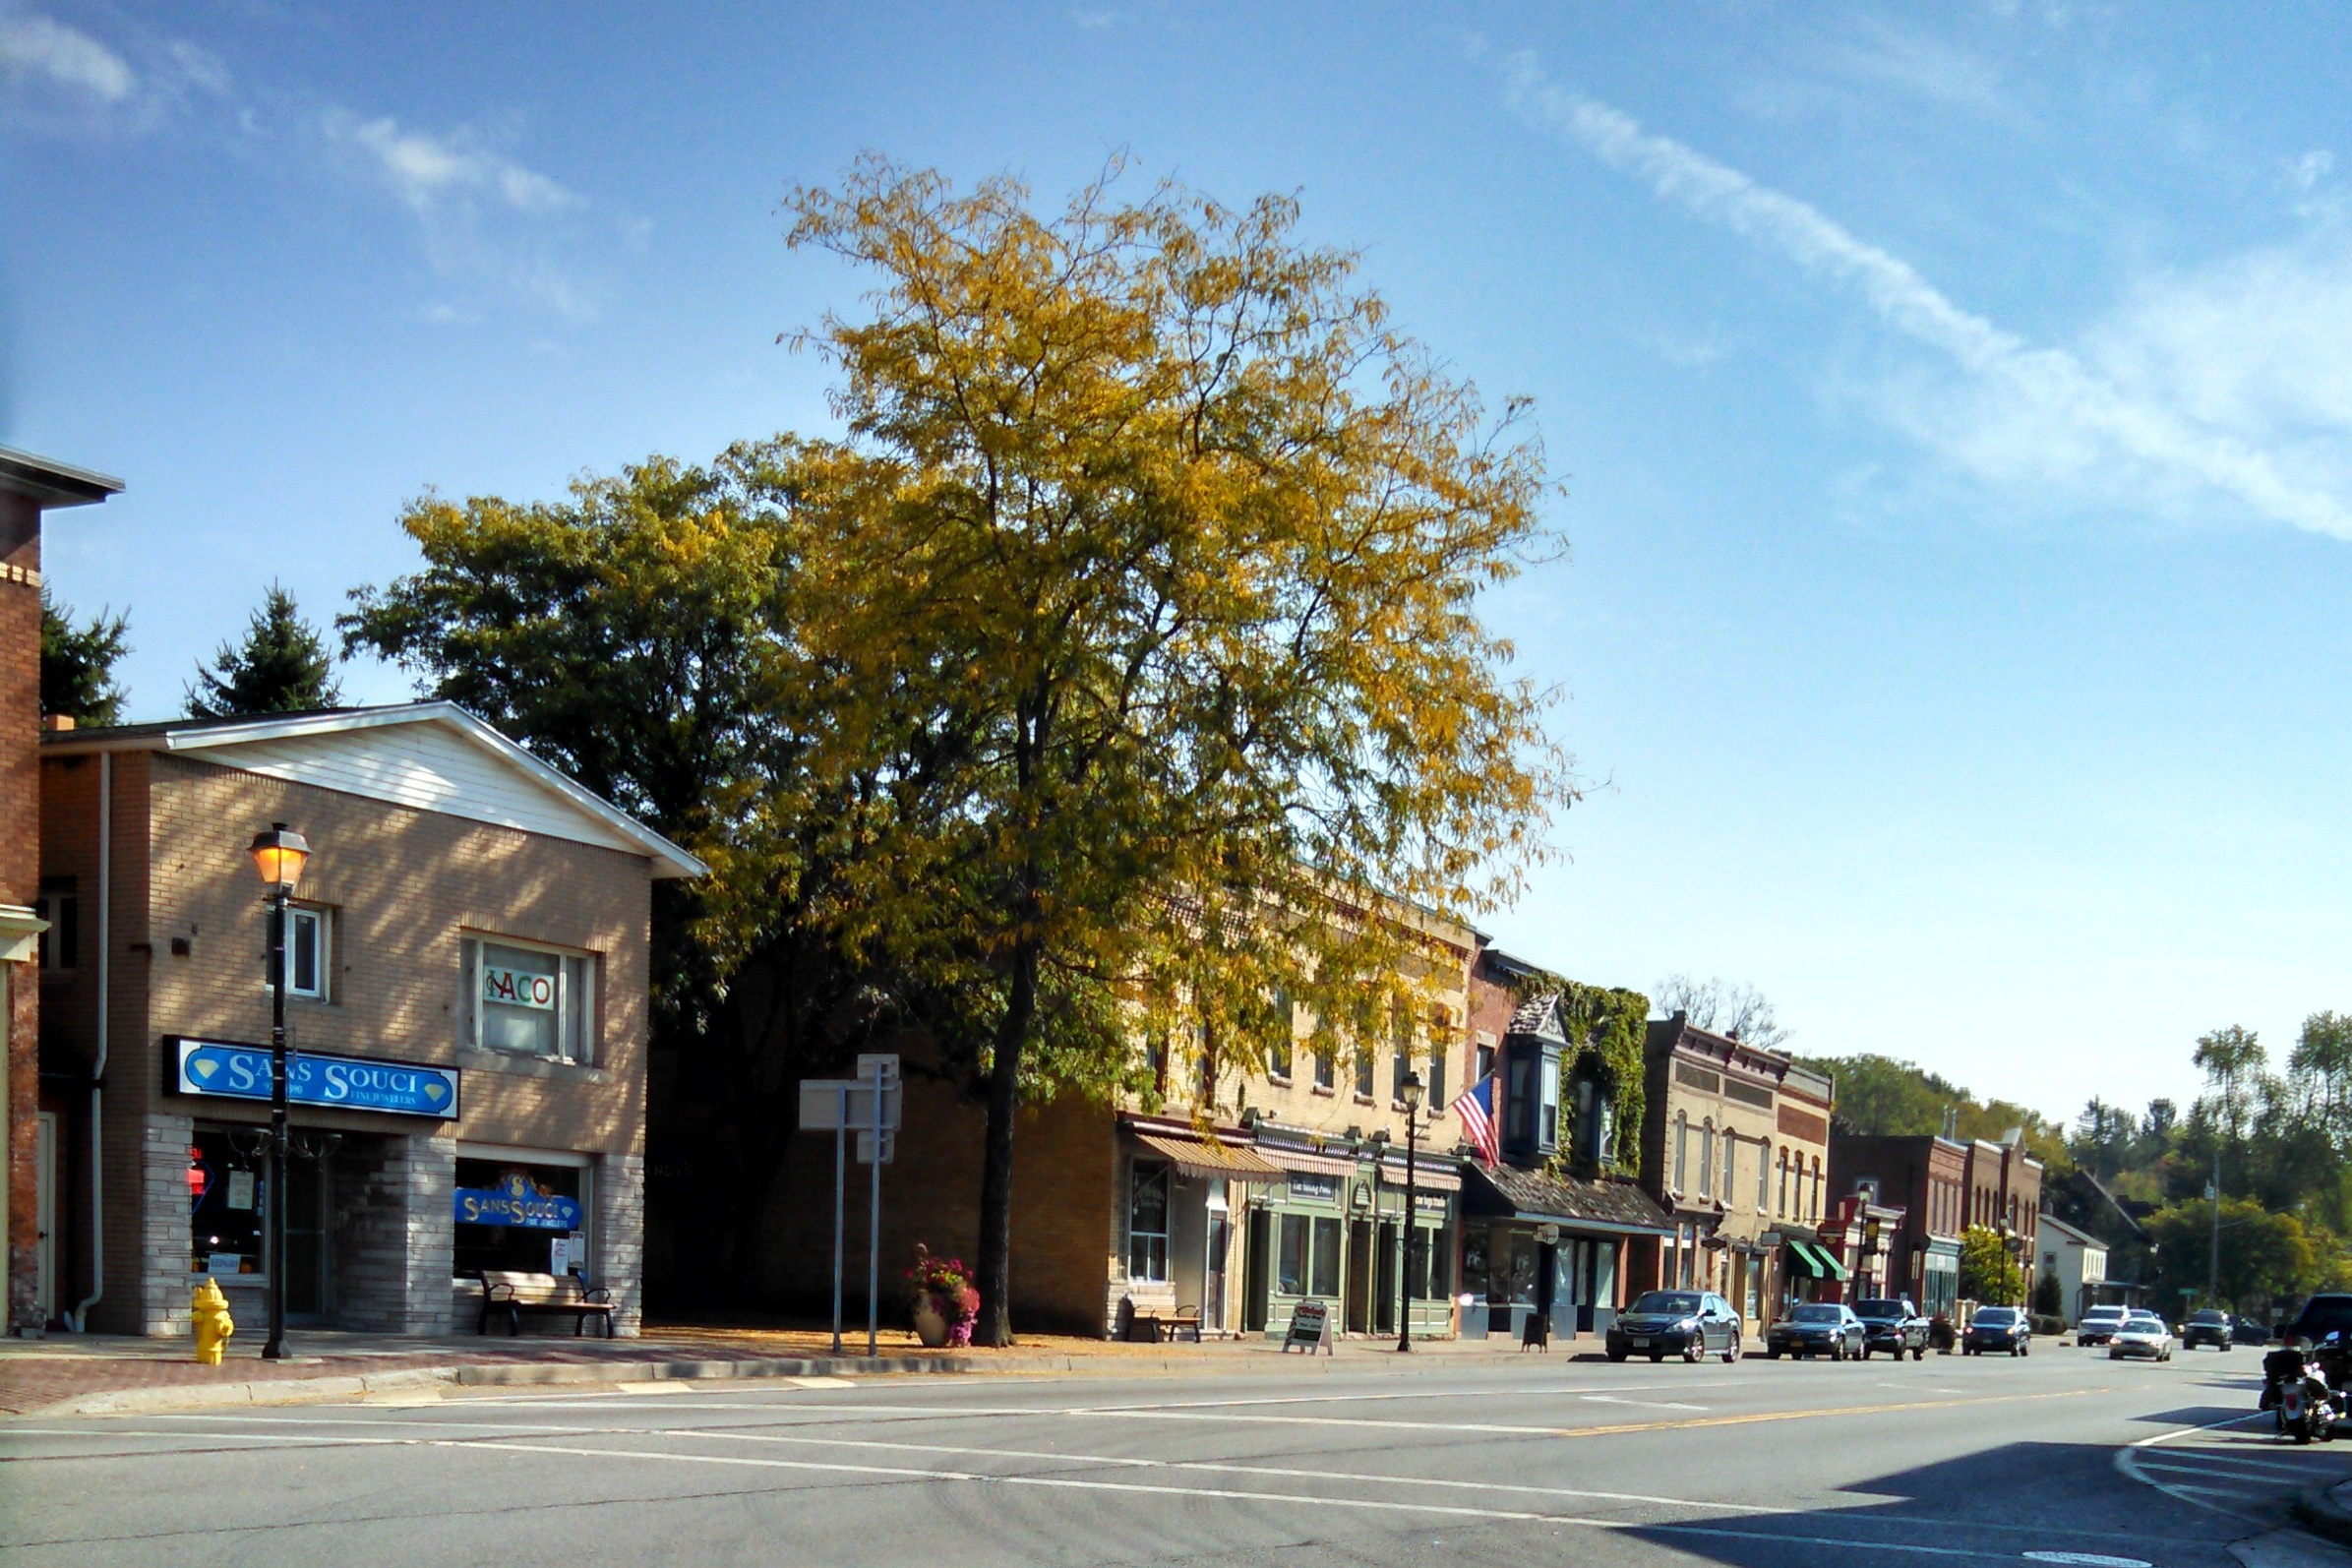 Façade Improvement - We are pleased to inform you that the Facade Improvement Program is back 2019, offering grant funding for commercial buildings in the business district. The Program is administered by the Facade Improvement Committee with funding from the Victor Local Development Corporation and the Village Urban Renewal Agency.